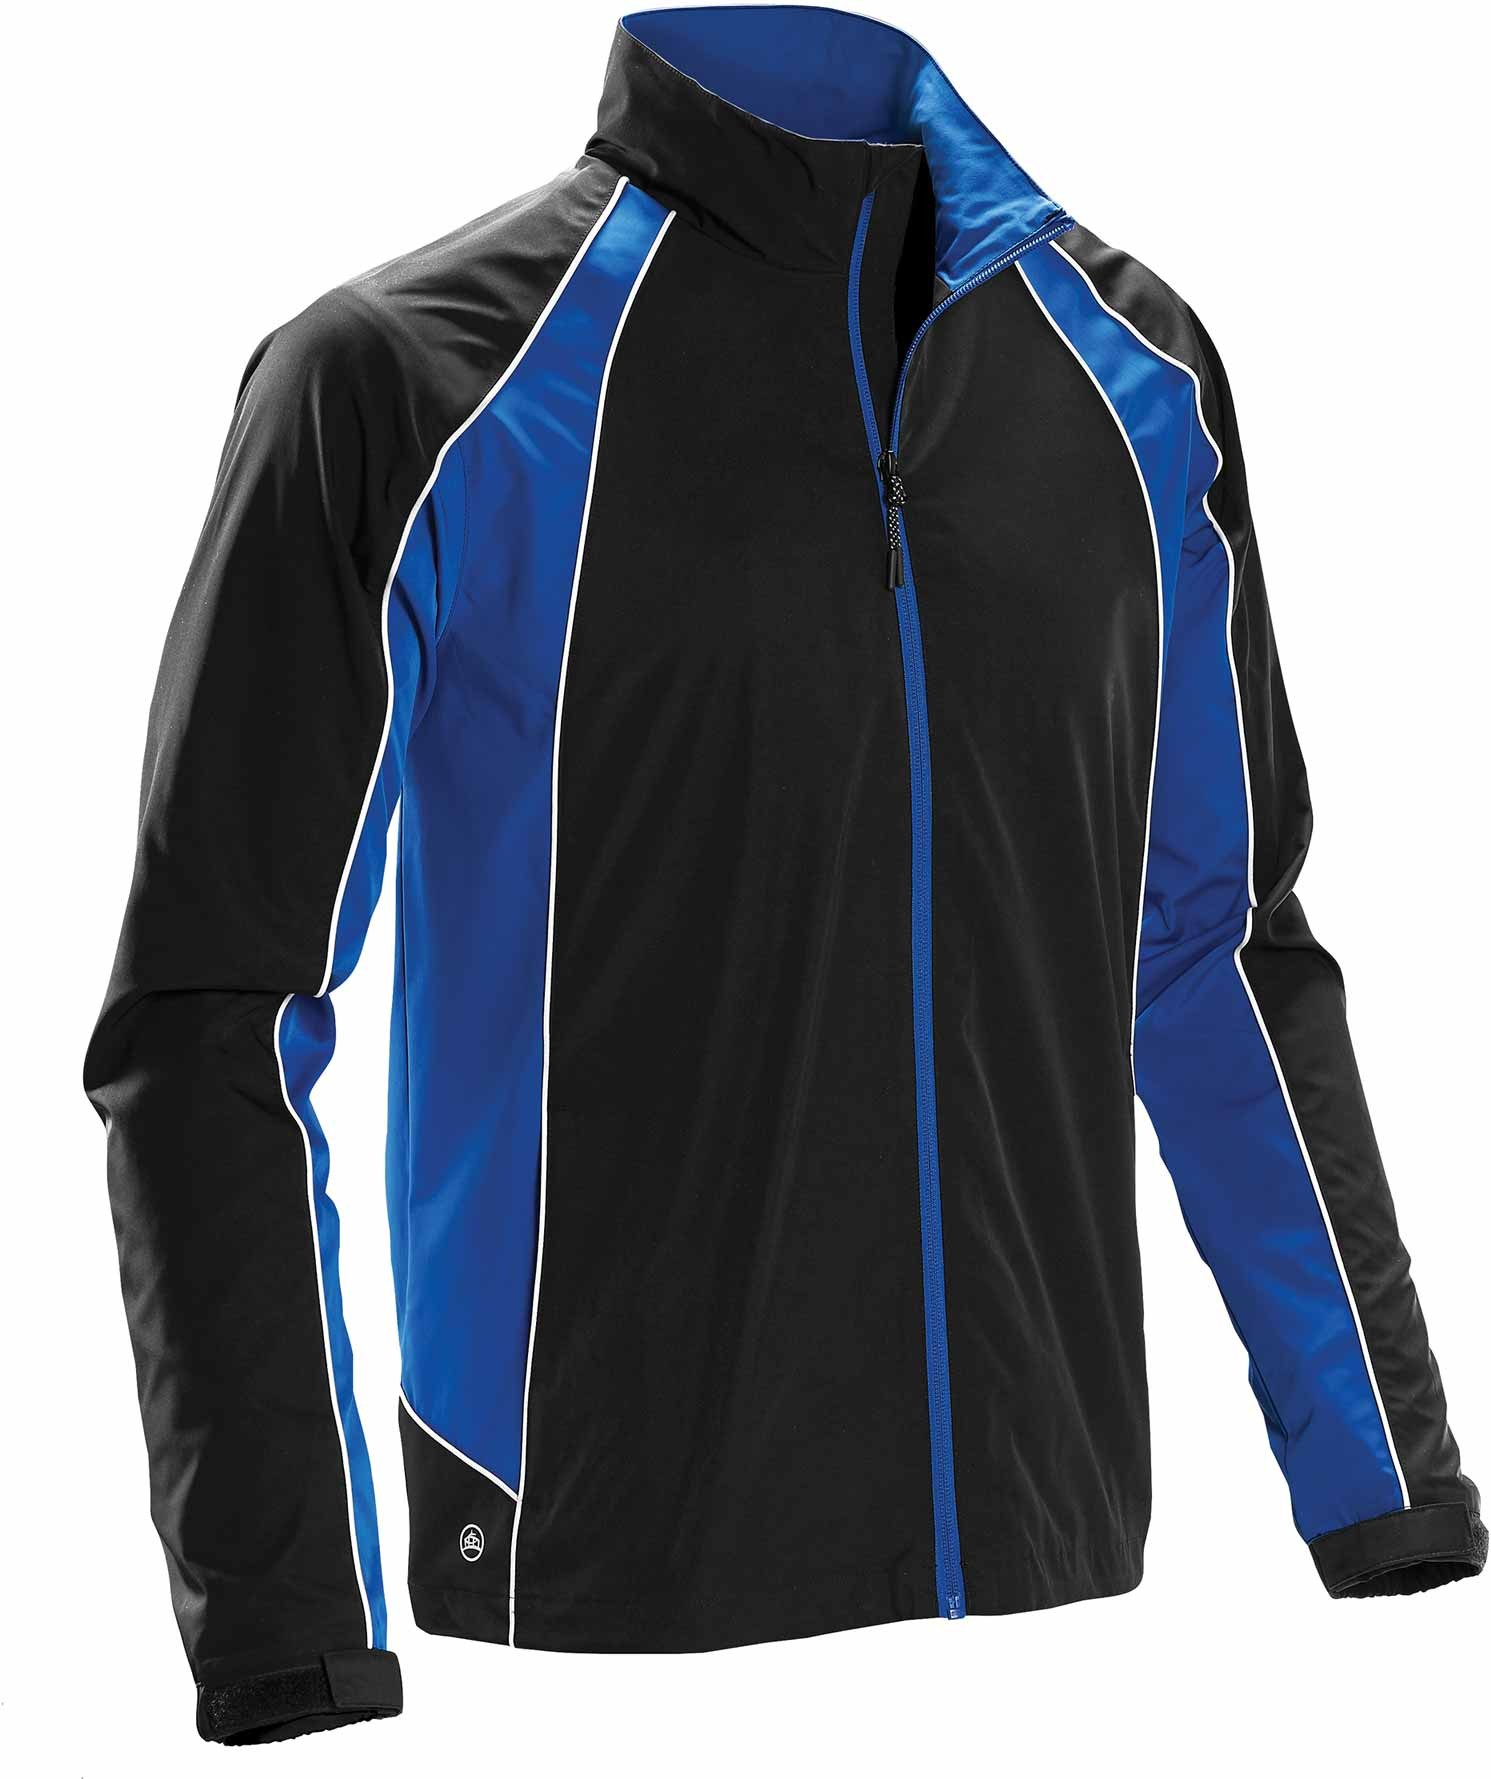 Stormtech STXJ-2 - Men's Warrior Training Jacket